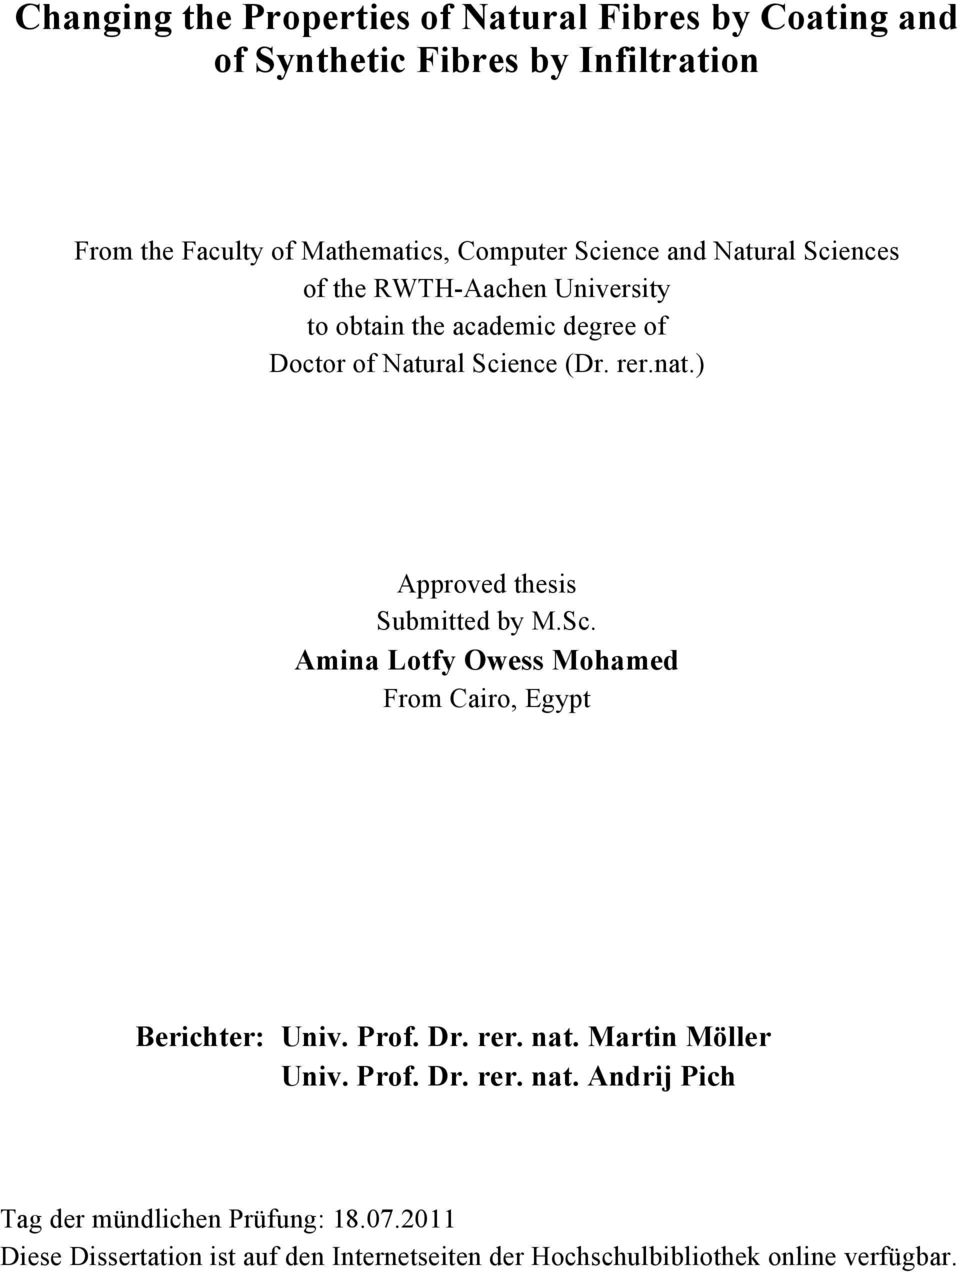 ) Approved thesis Submitted by M.Sc. Amina Lotfy Owess Mohamed From Cairo, Egypt Berichter: Univ. Prof. Dr. rer. nat. Martin Möller Univ.